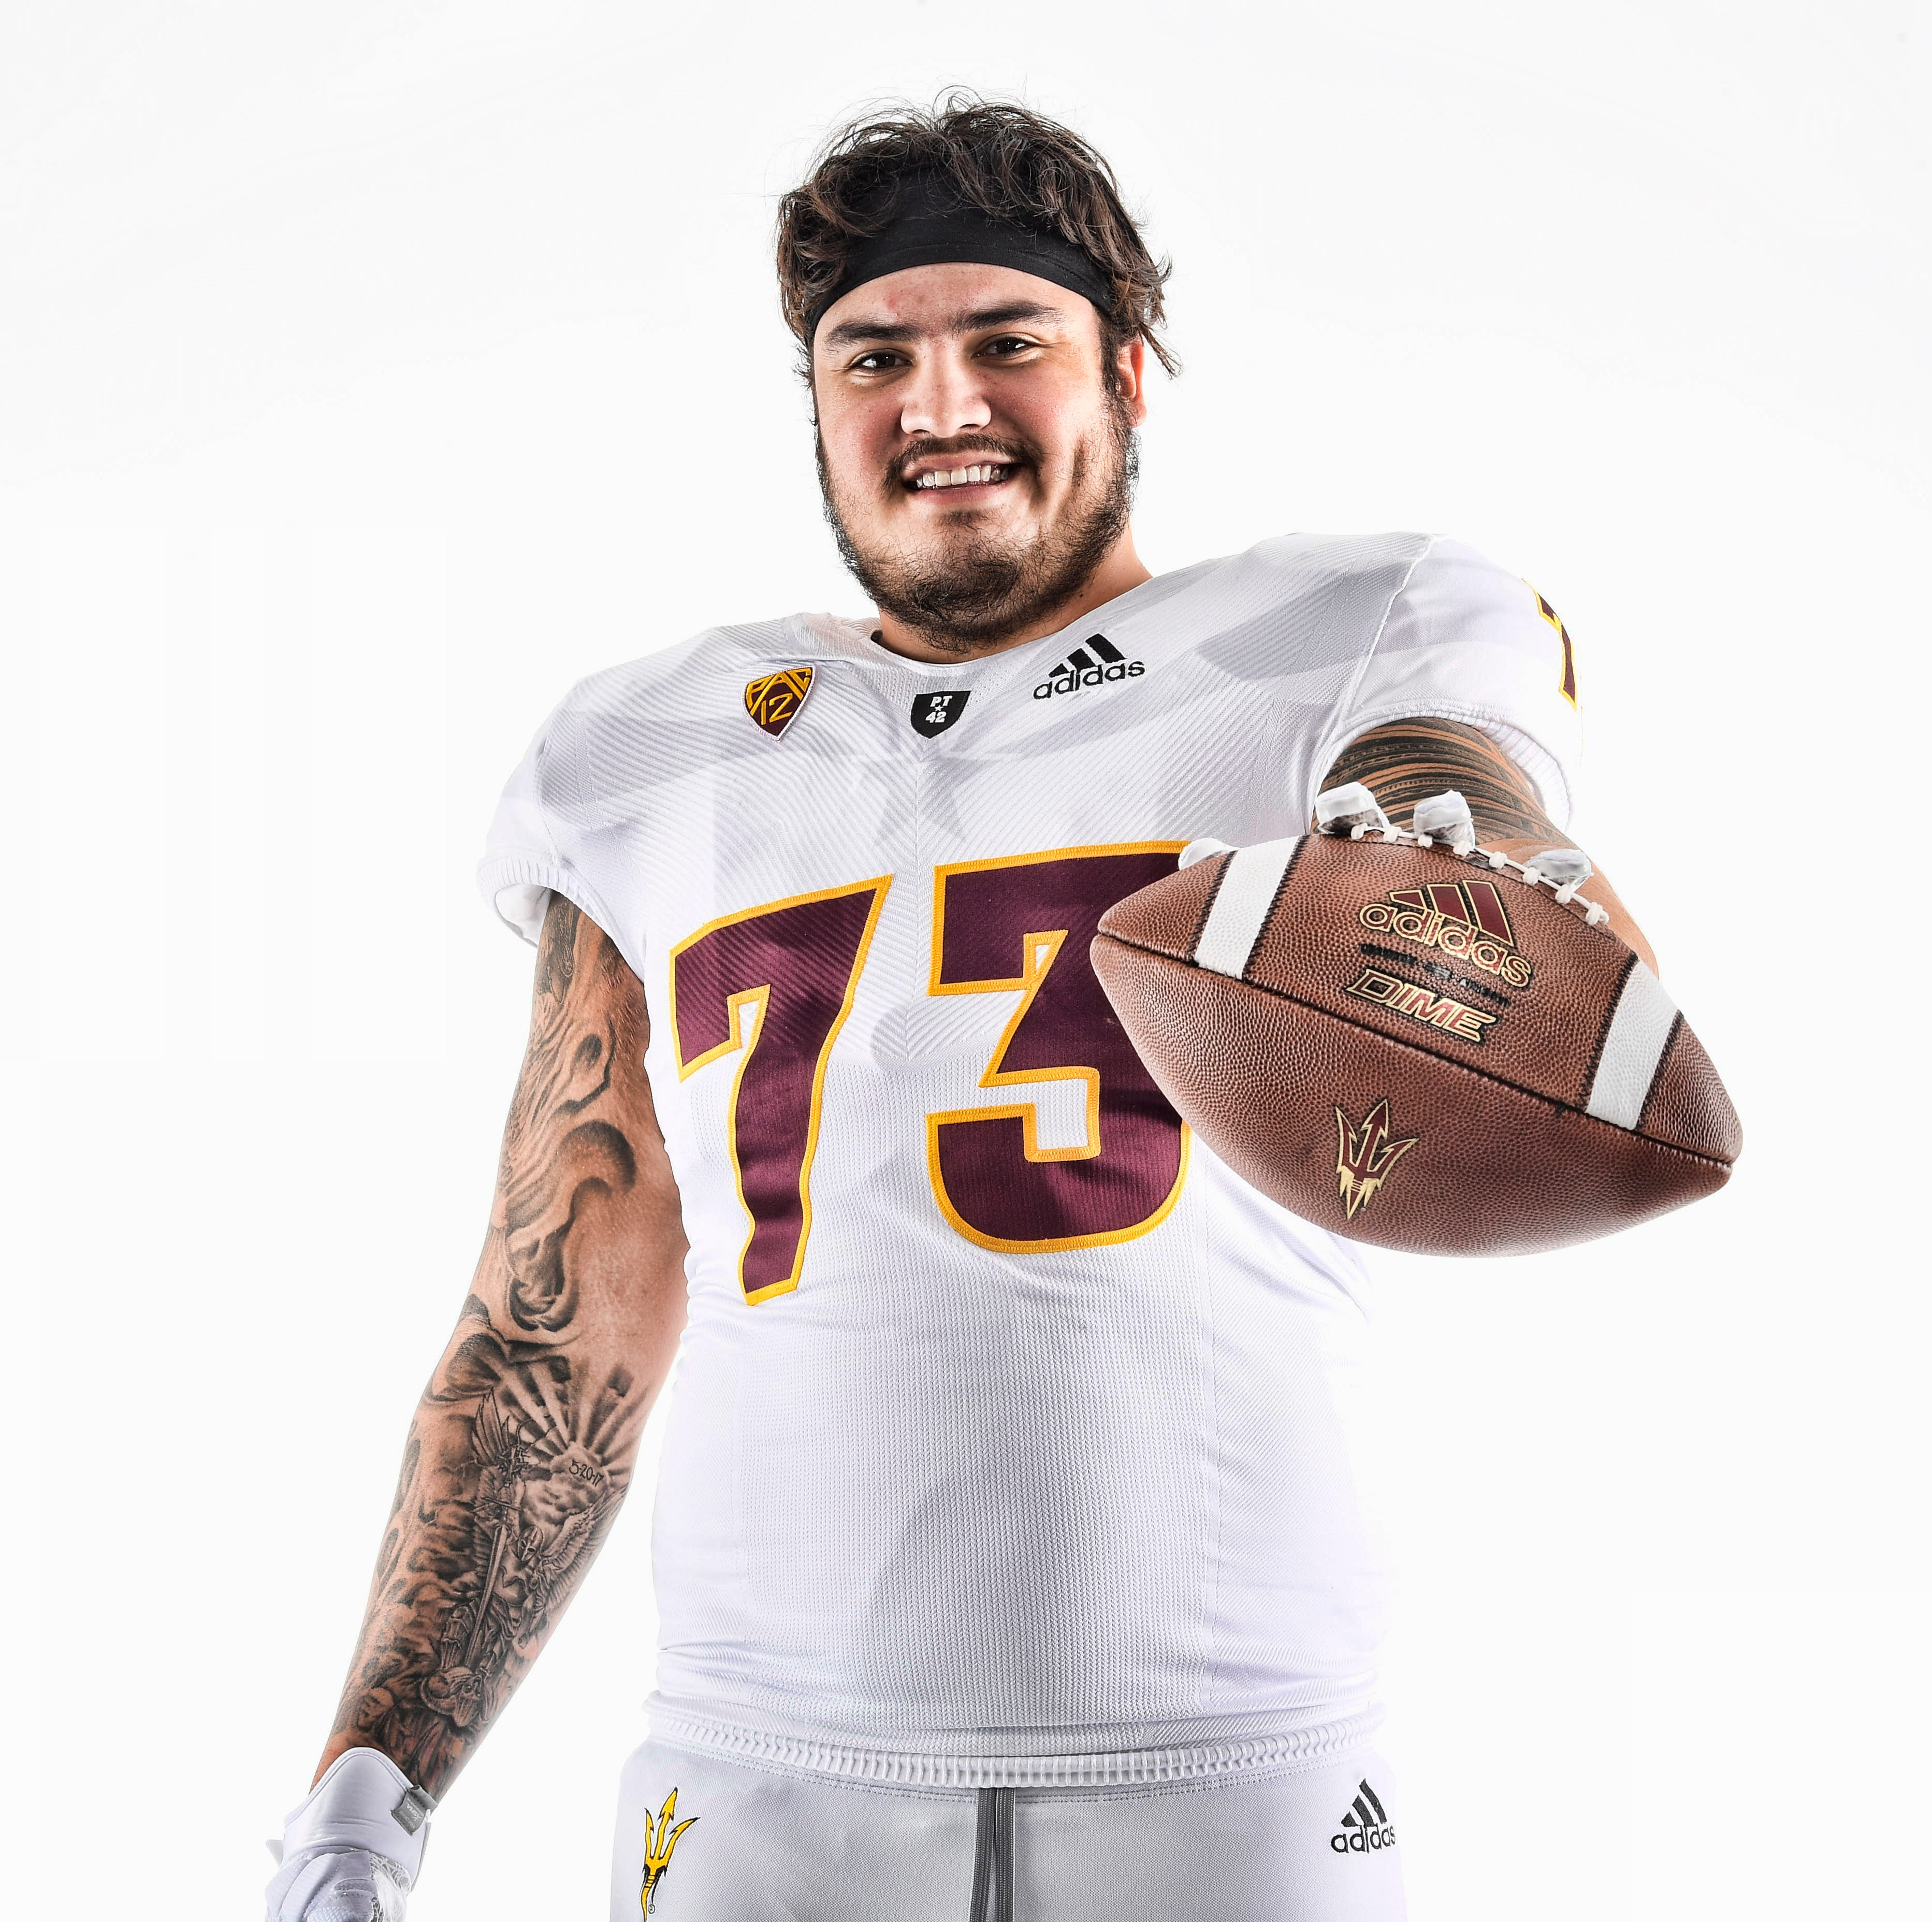 ASU unveils football uniform for game at Washington